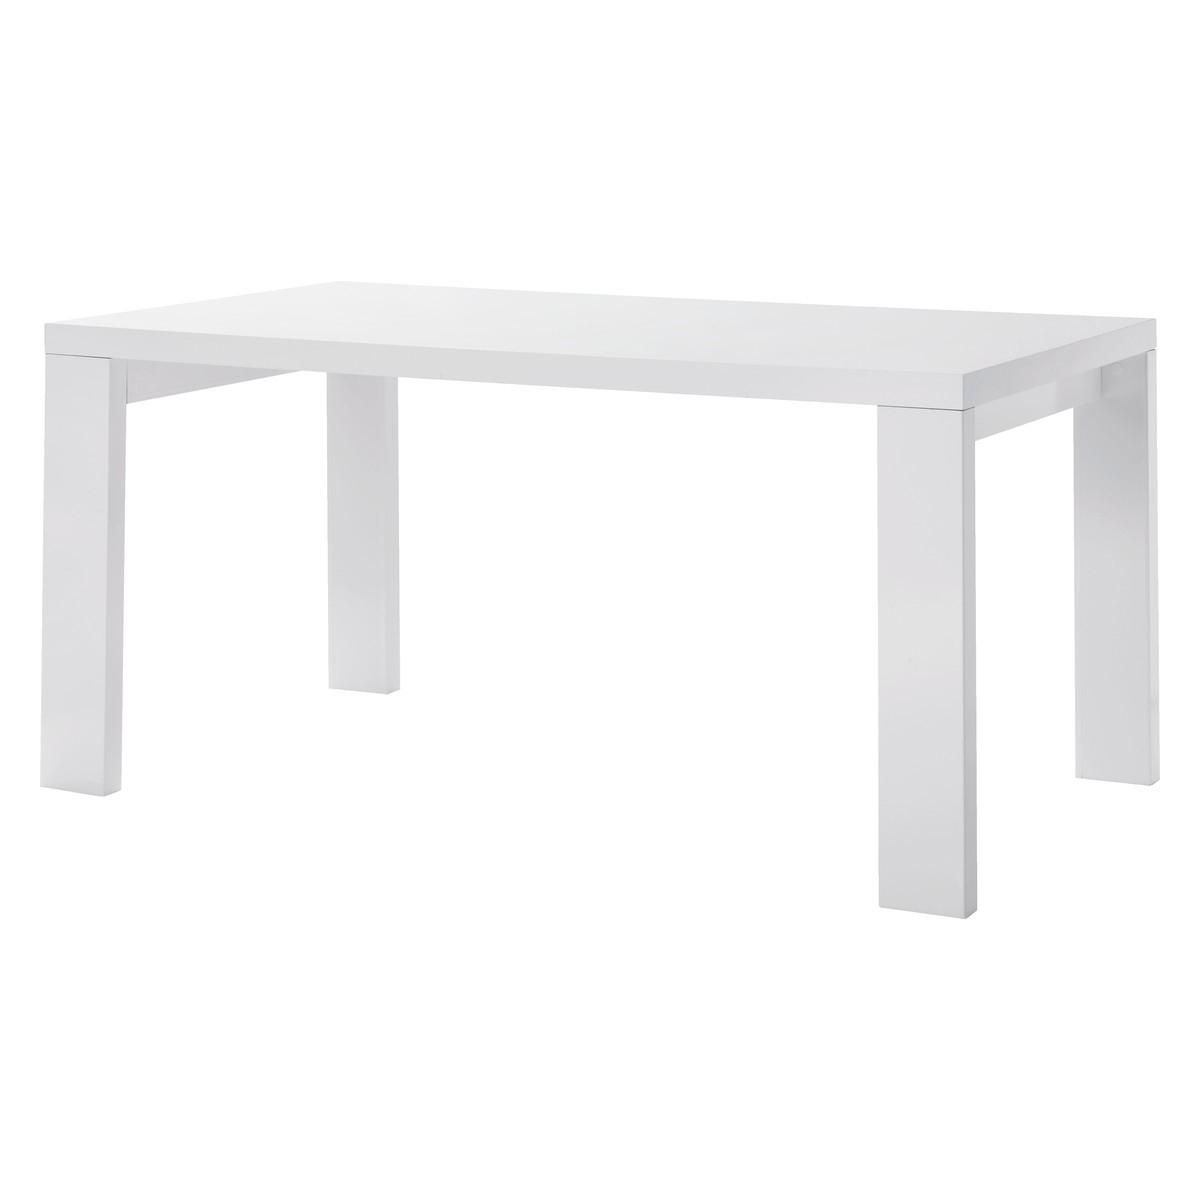 Gloss White Dining Tables Regarding Well Known Asper 6 Seat White High Gloss Dining Table (Gallery 21 of 25)